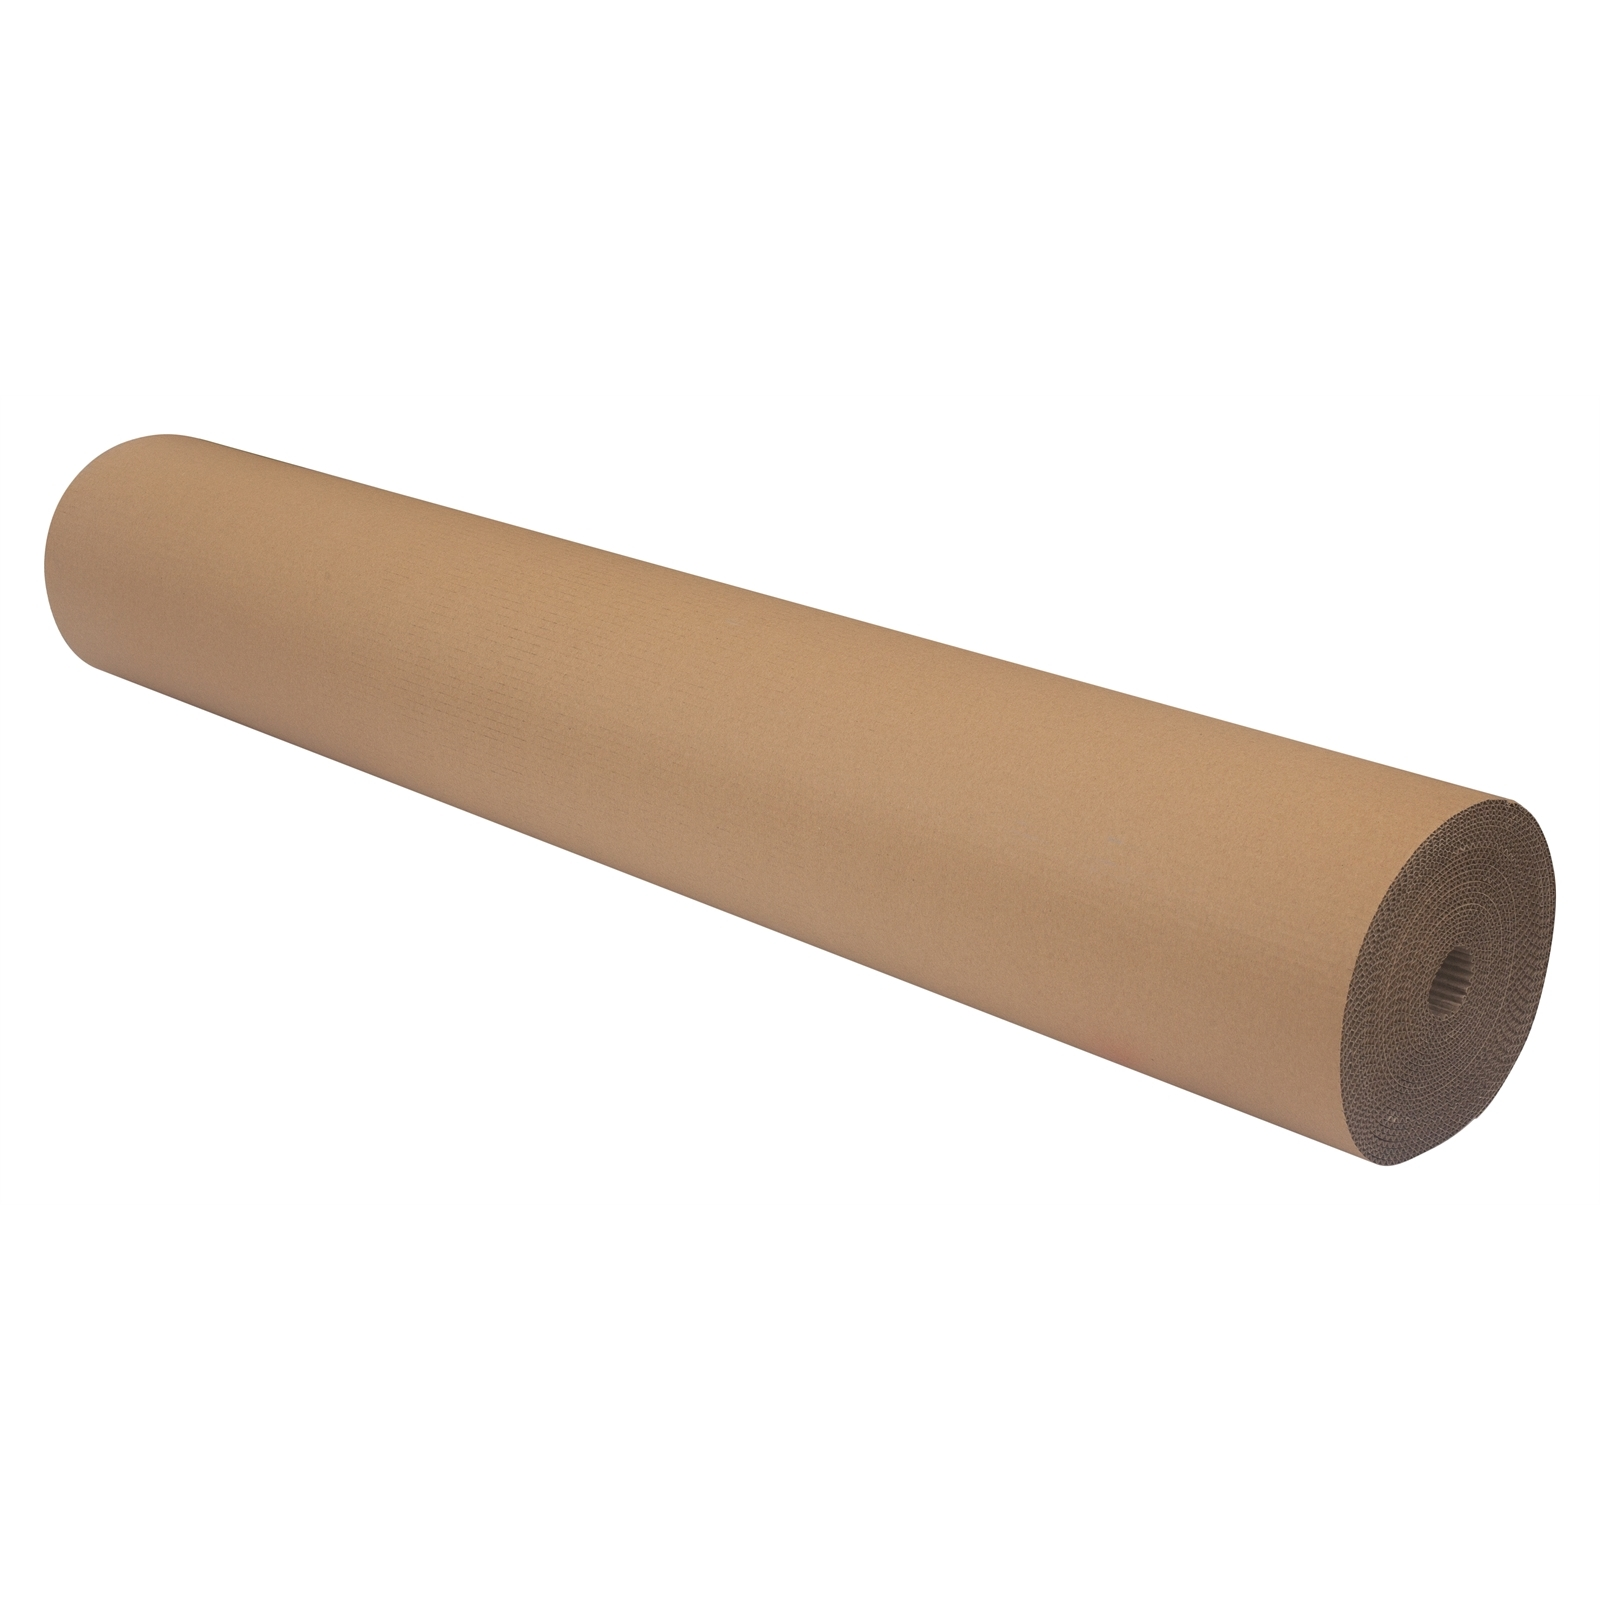 Wrap & Move 1200mm x 10m Packaging Wrap